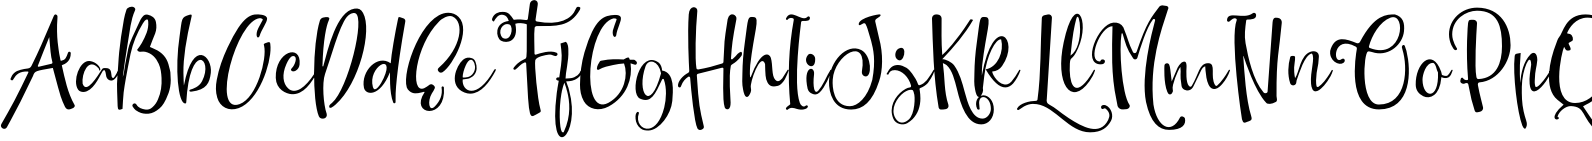 New Monday Script Two Font